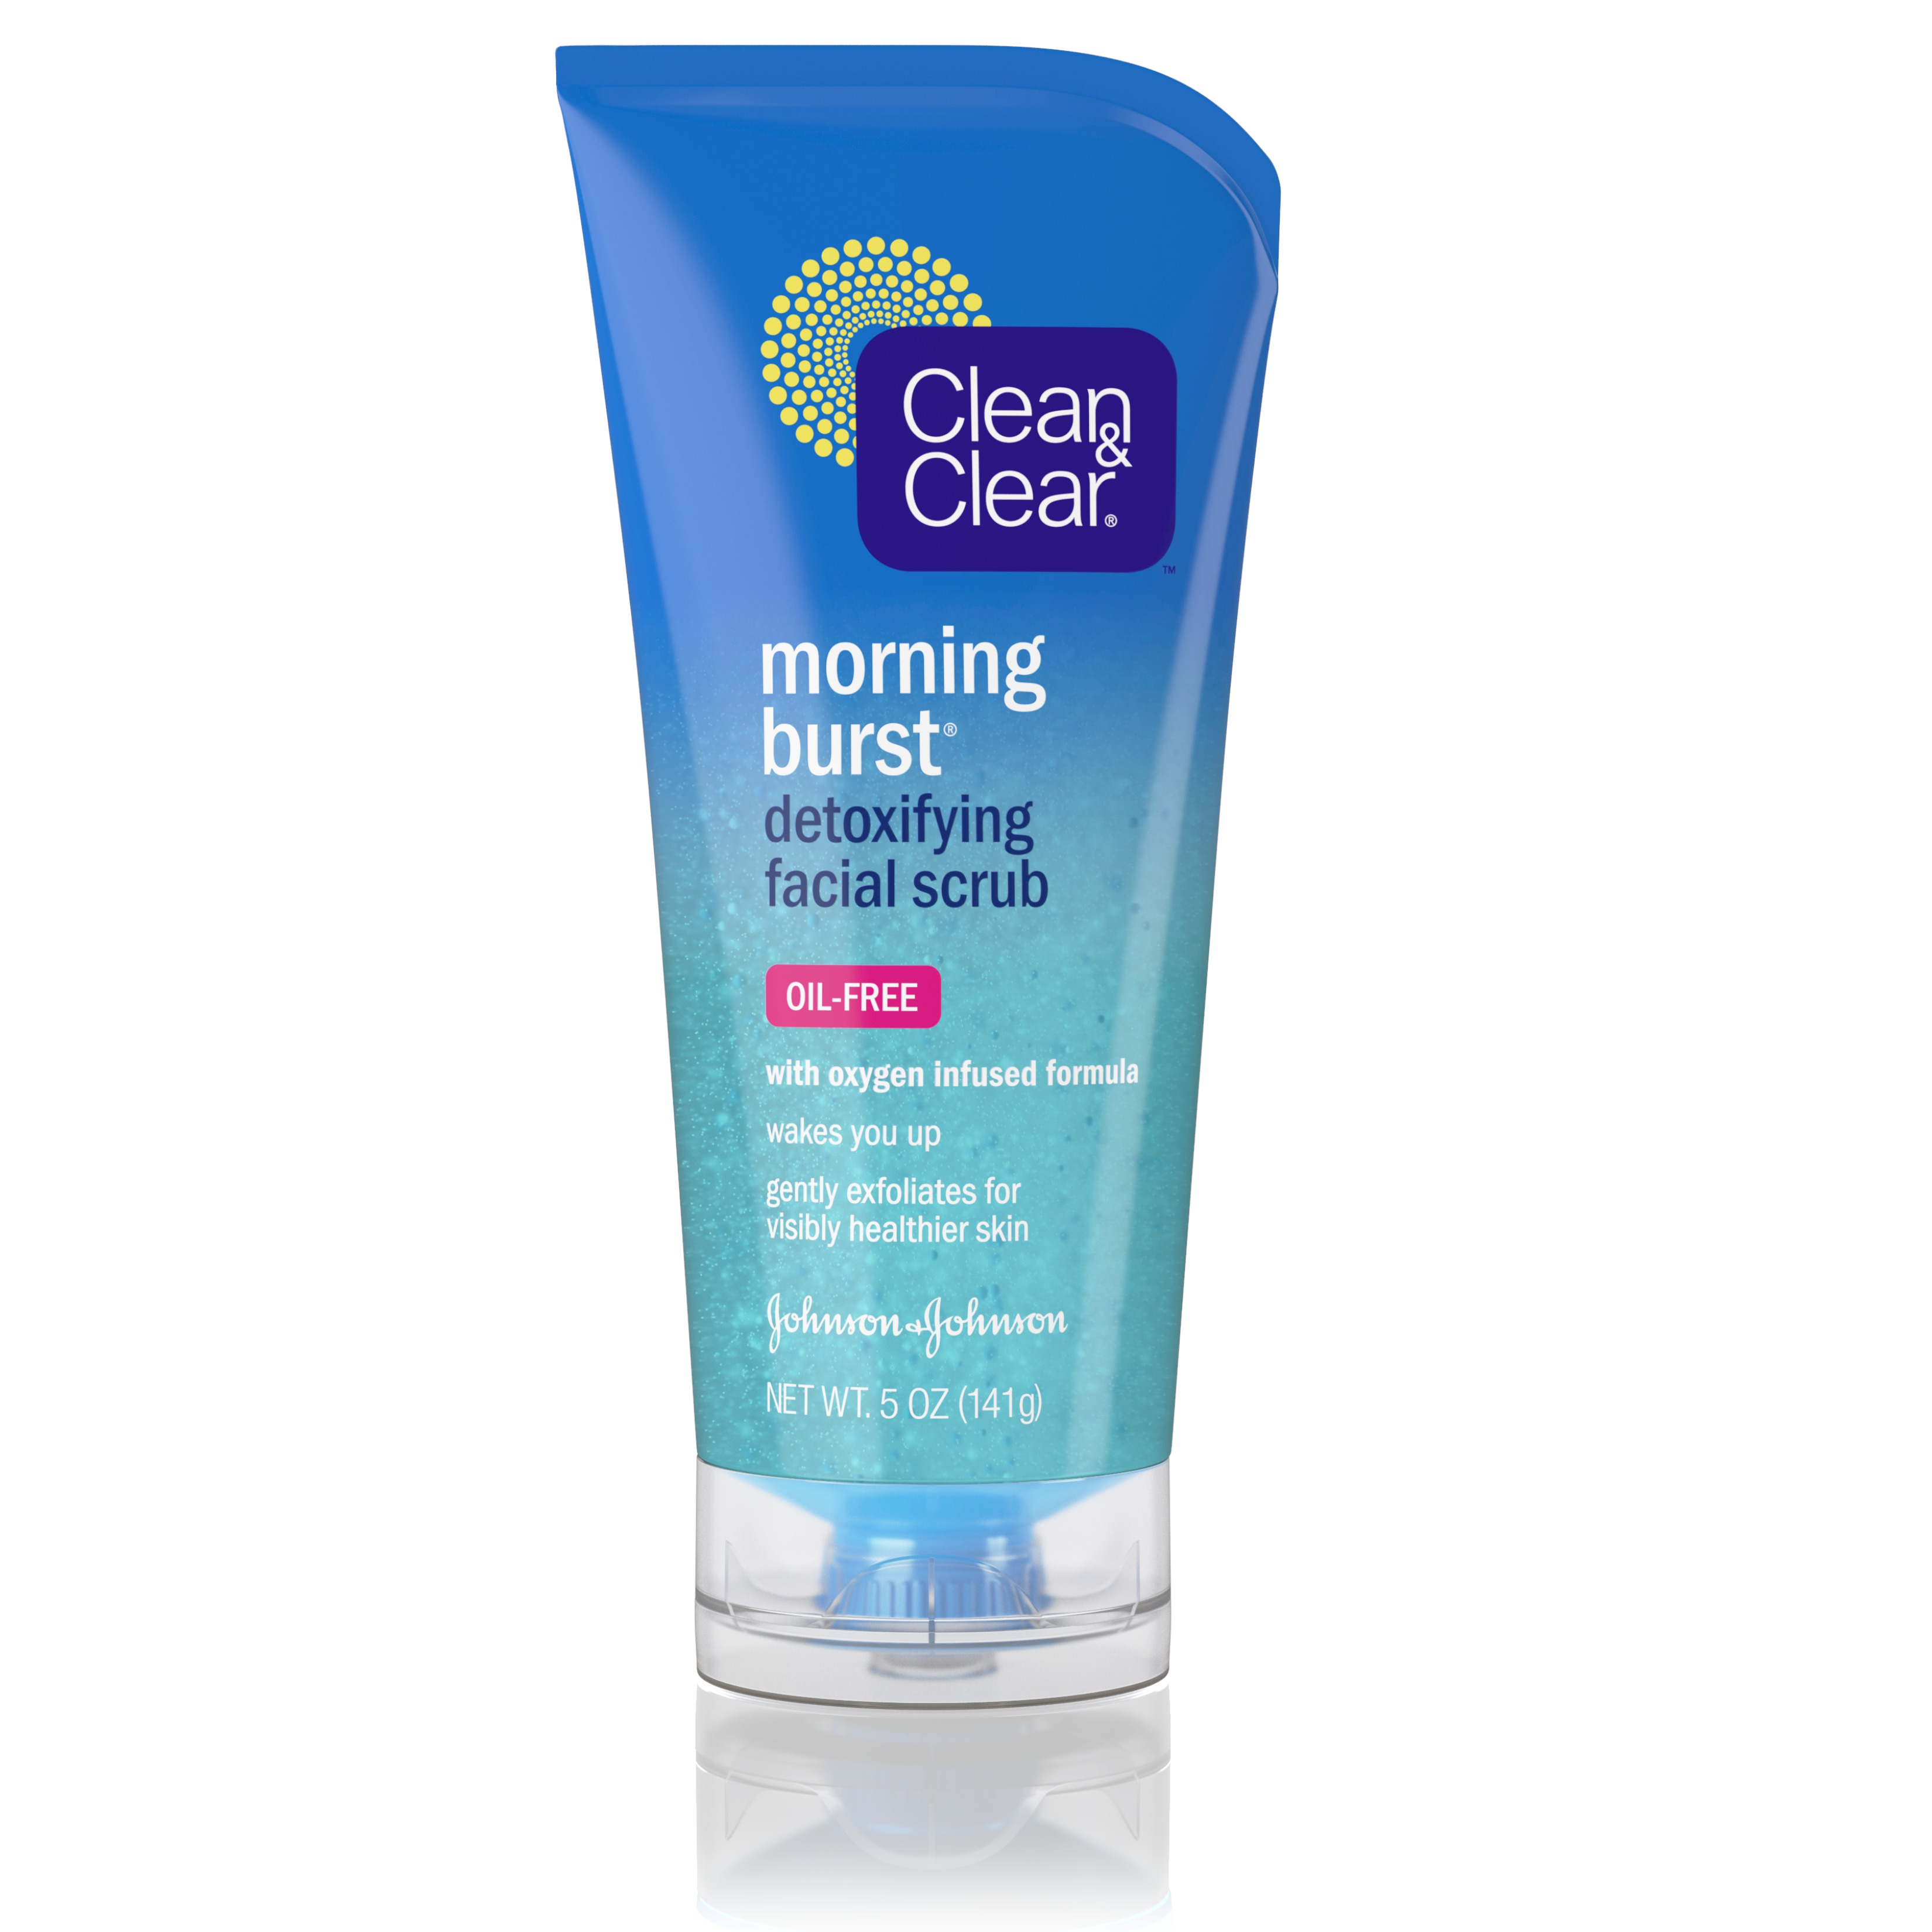 Clean & Clear Morning Burst Detoxifying Facial Scrub For Clear Skin , 5 Fl. Oz.